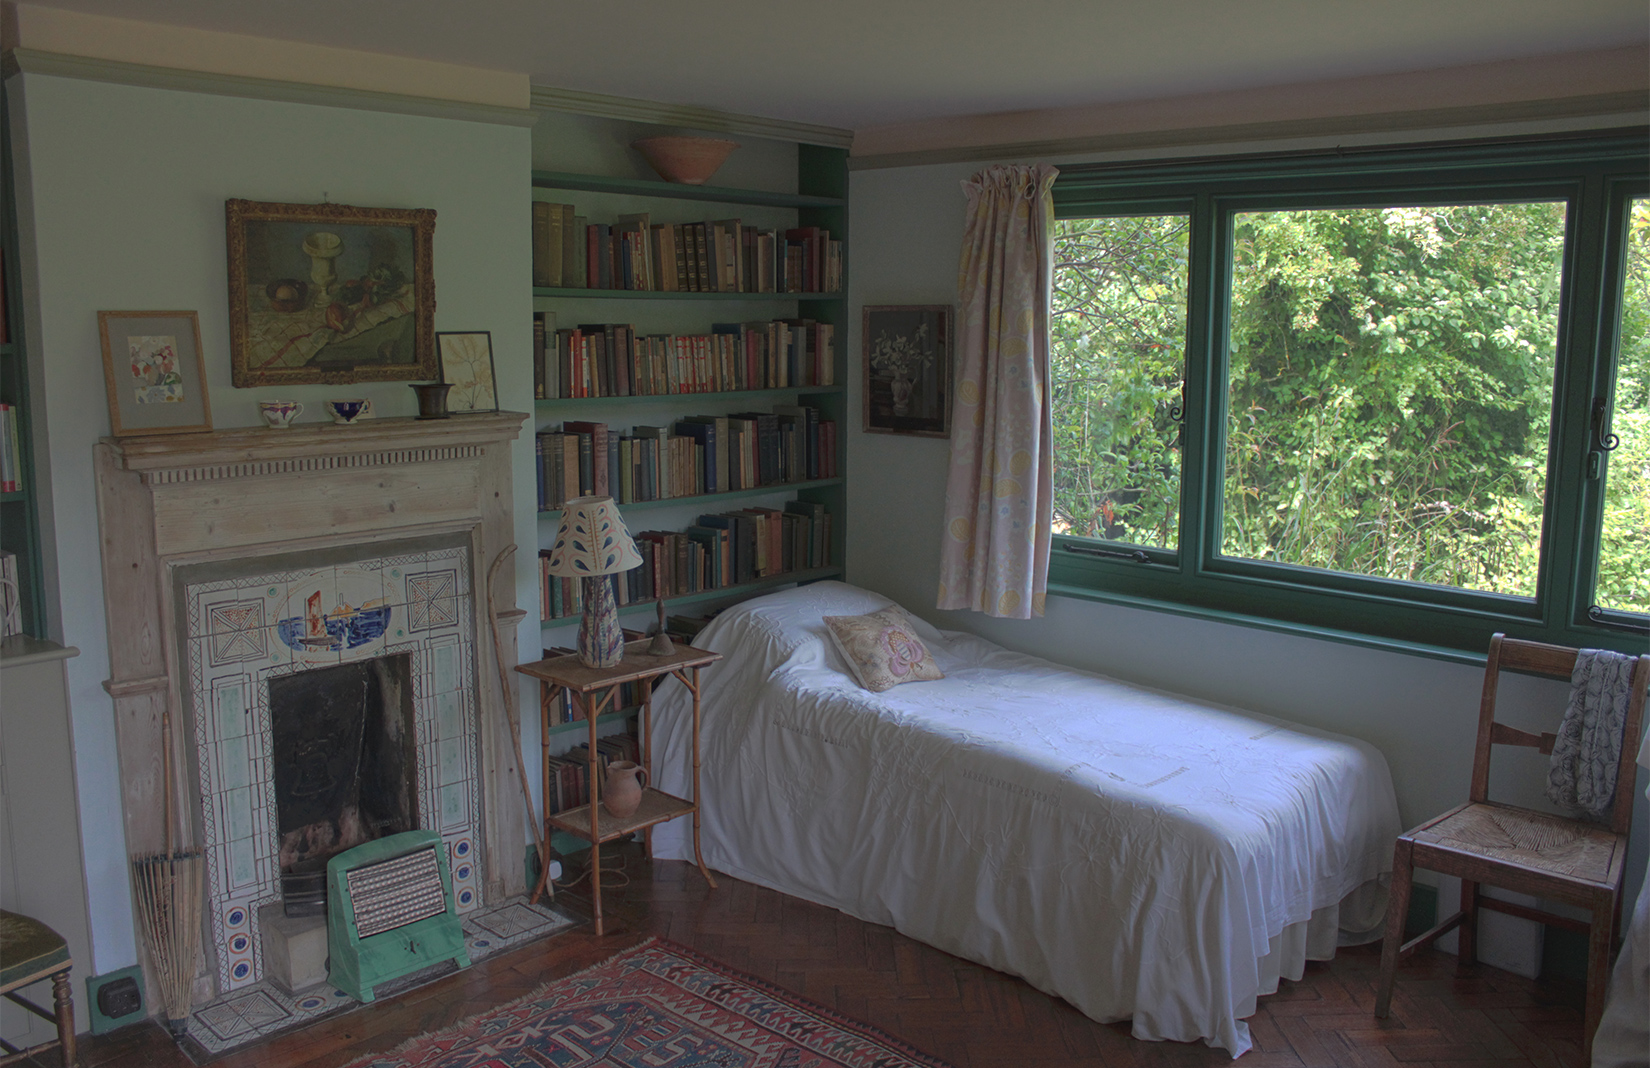 Virginia Woolf Monk House in East Sussex